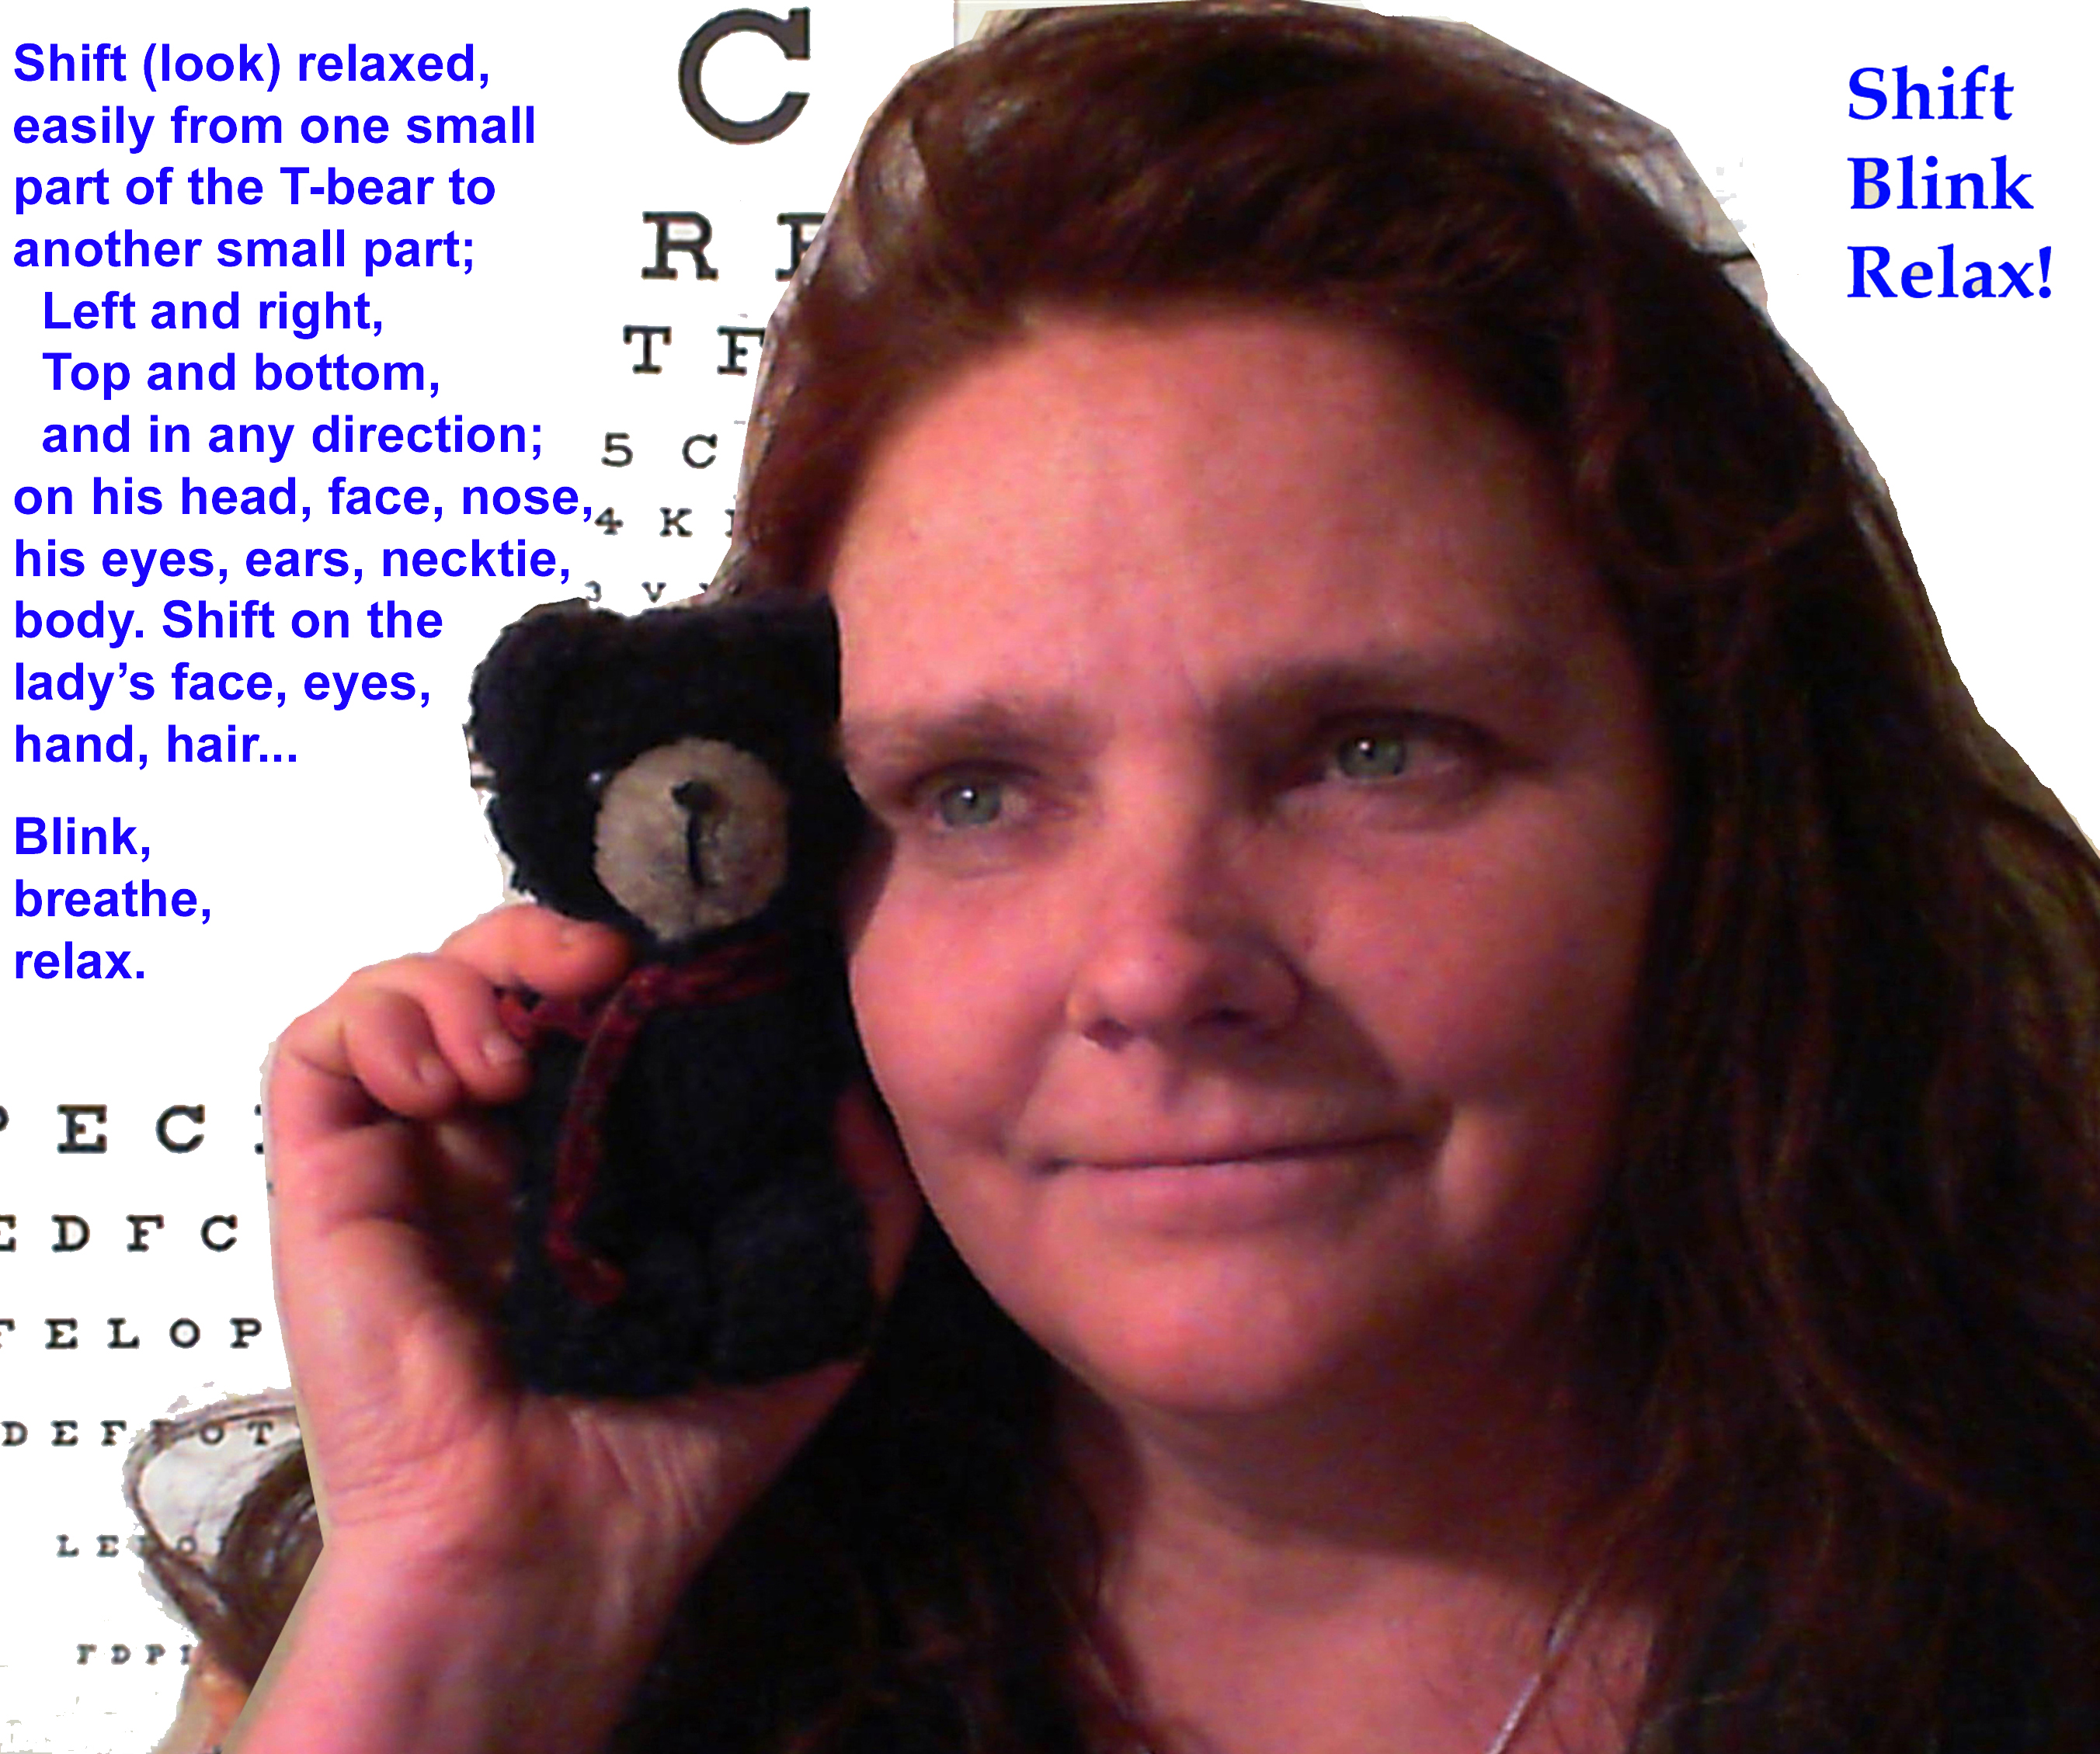 Website, book Author Mary I. Oliver (Pen Name-Clark Night) teaching Natural Eyesight Improvement with T-Bear! For kids and Adults.